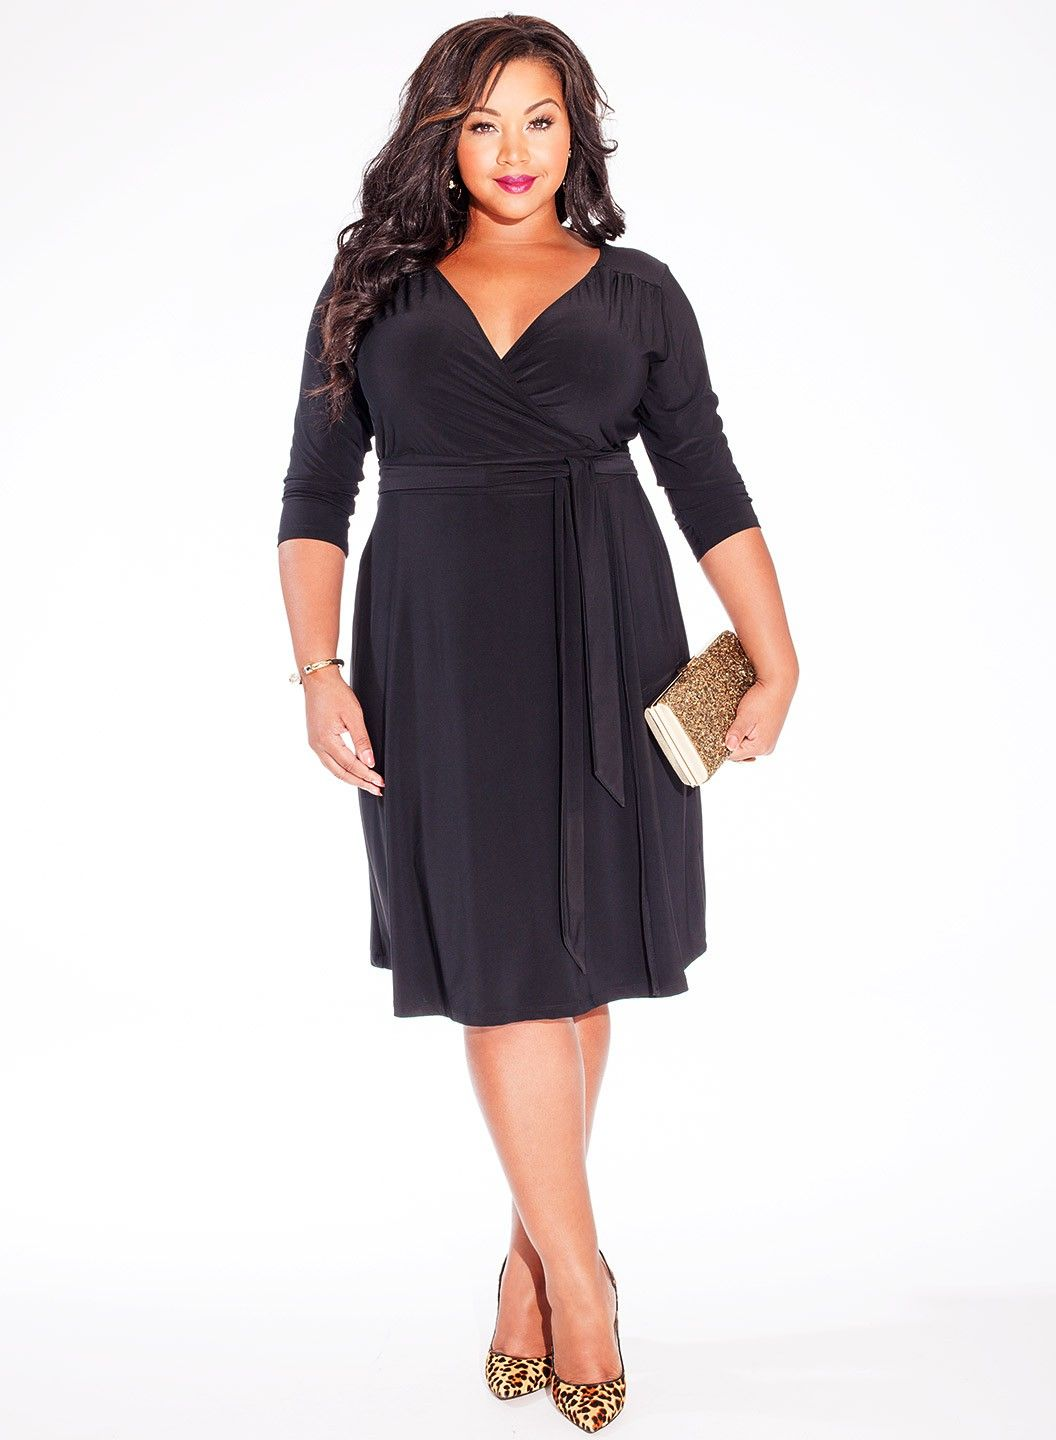 Dominque Dress Black In 2020 Plus Size Outfits Plus Size Cocktail Dresses Fashion